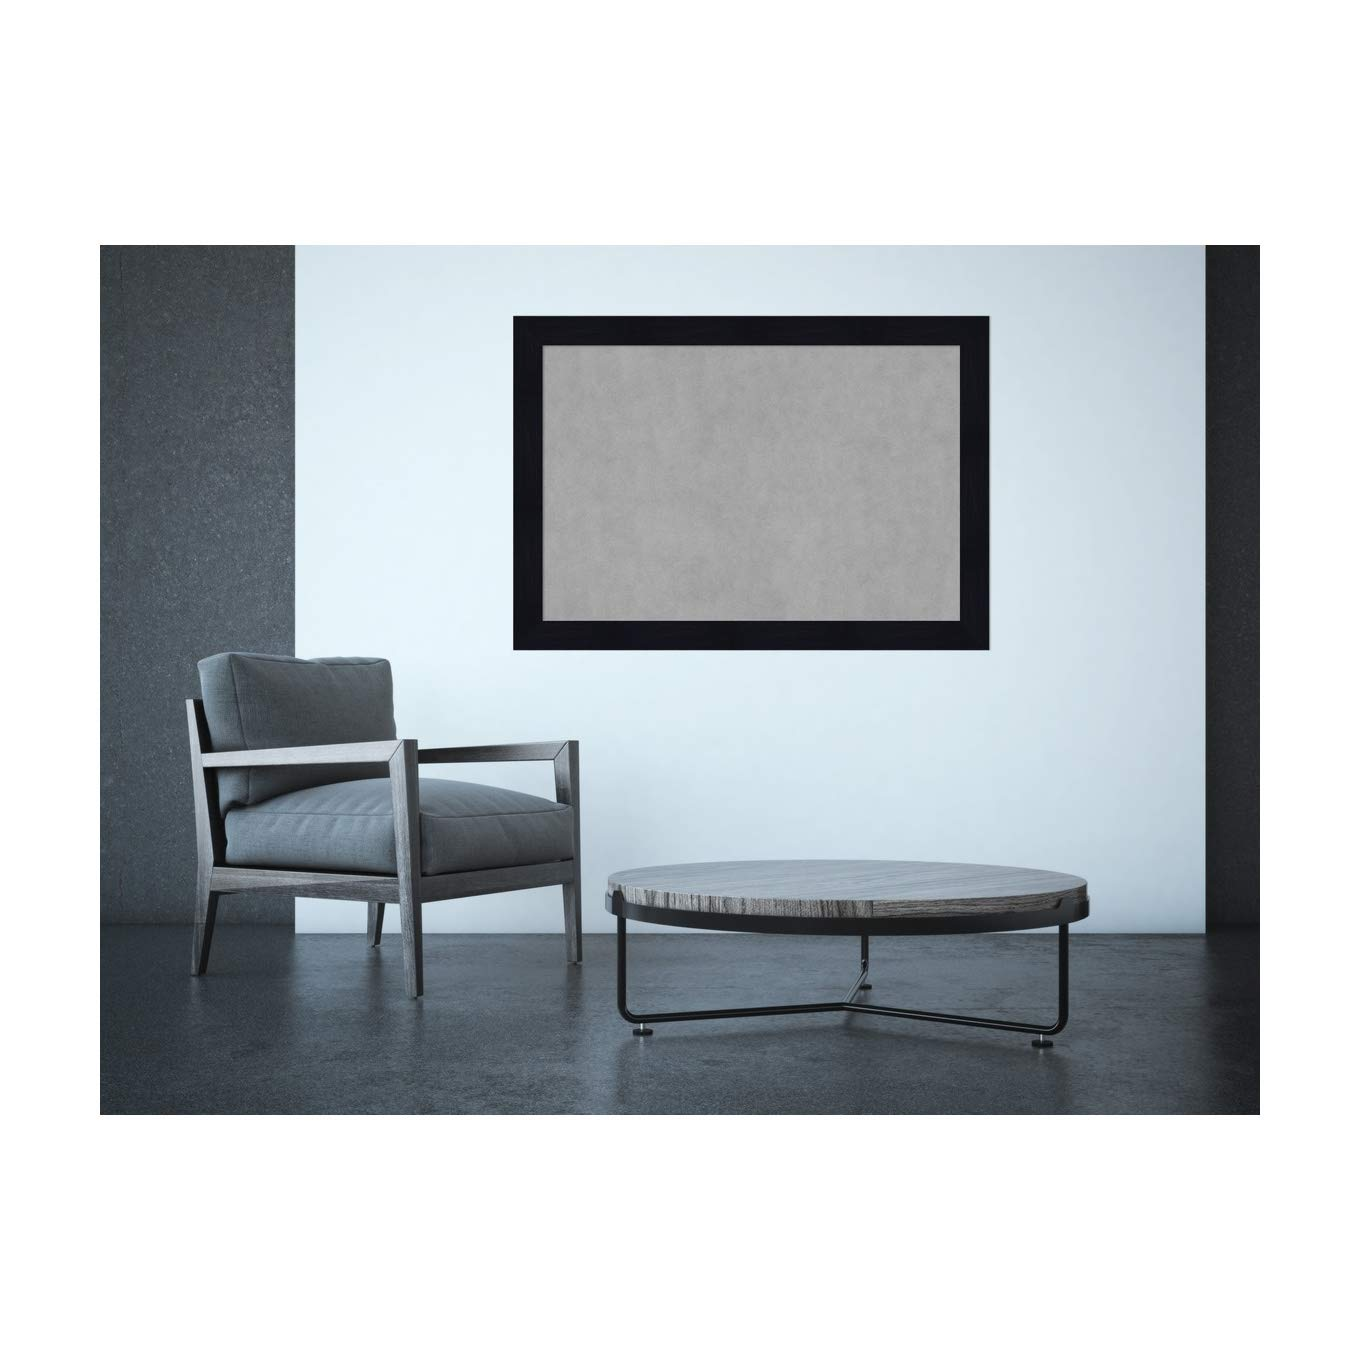 Outer Size 27 x 15 Sky Blue Rustic Framed Magnetic Boards Amanti Art Medium